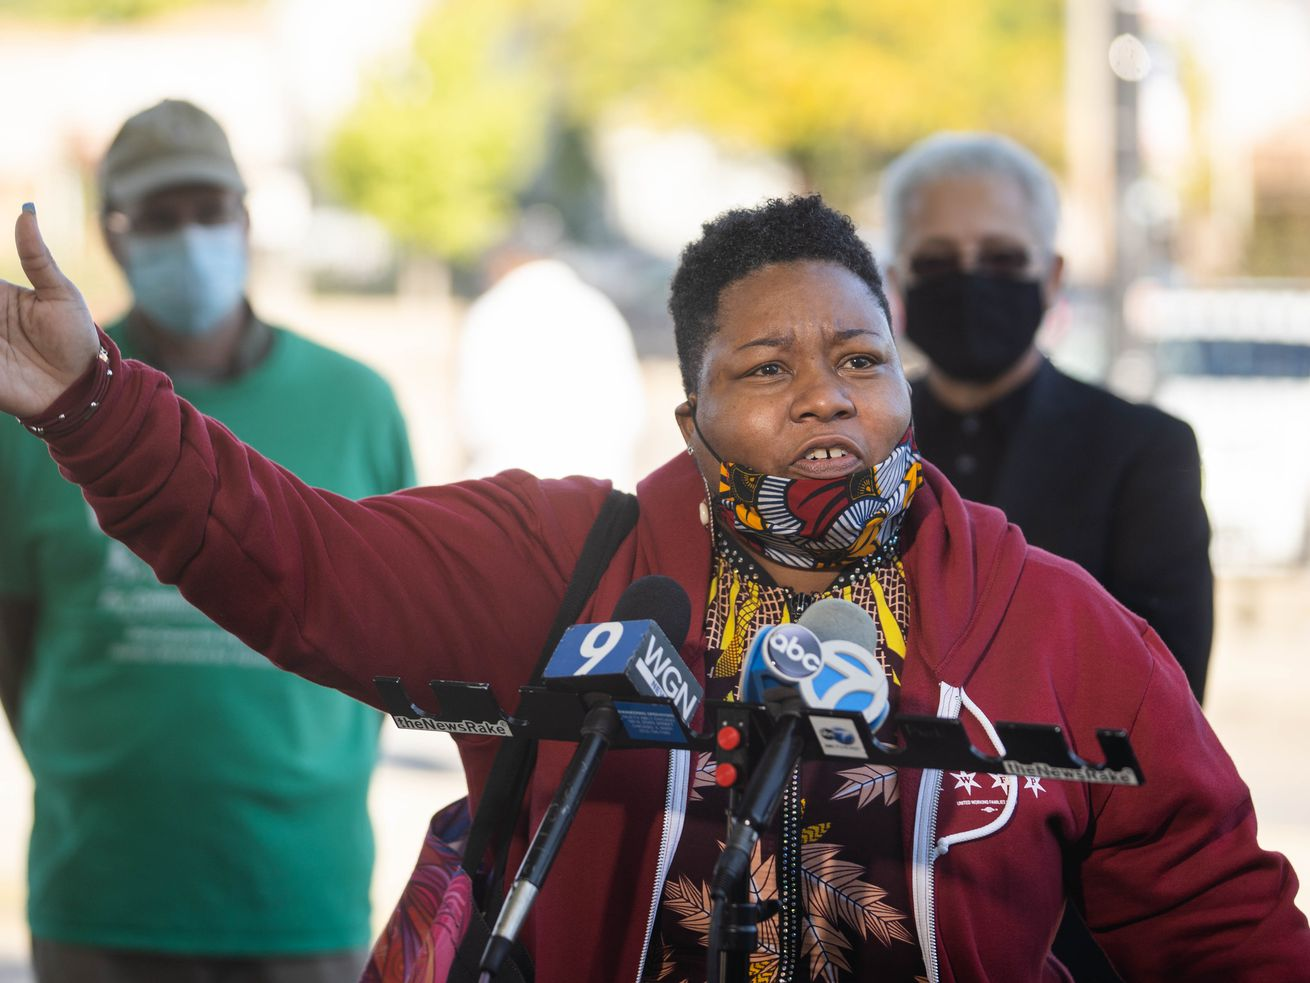 Activists, aldermen call on city to increase COVID-19 testing on South and West sides